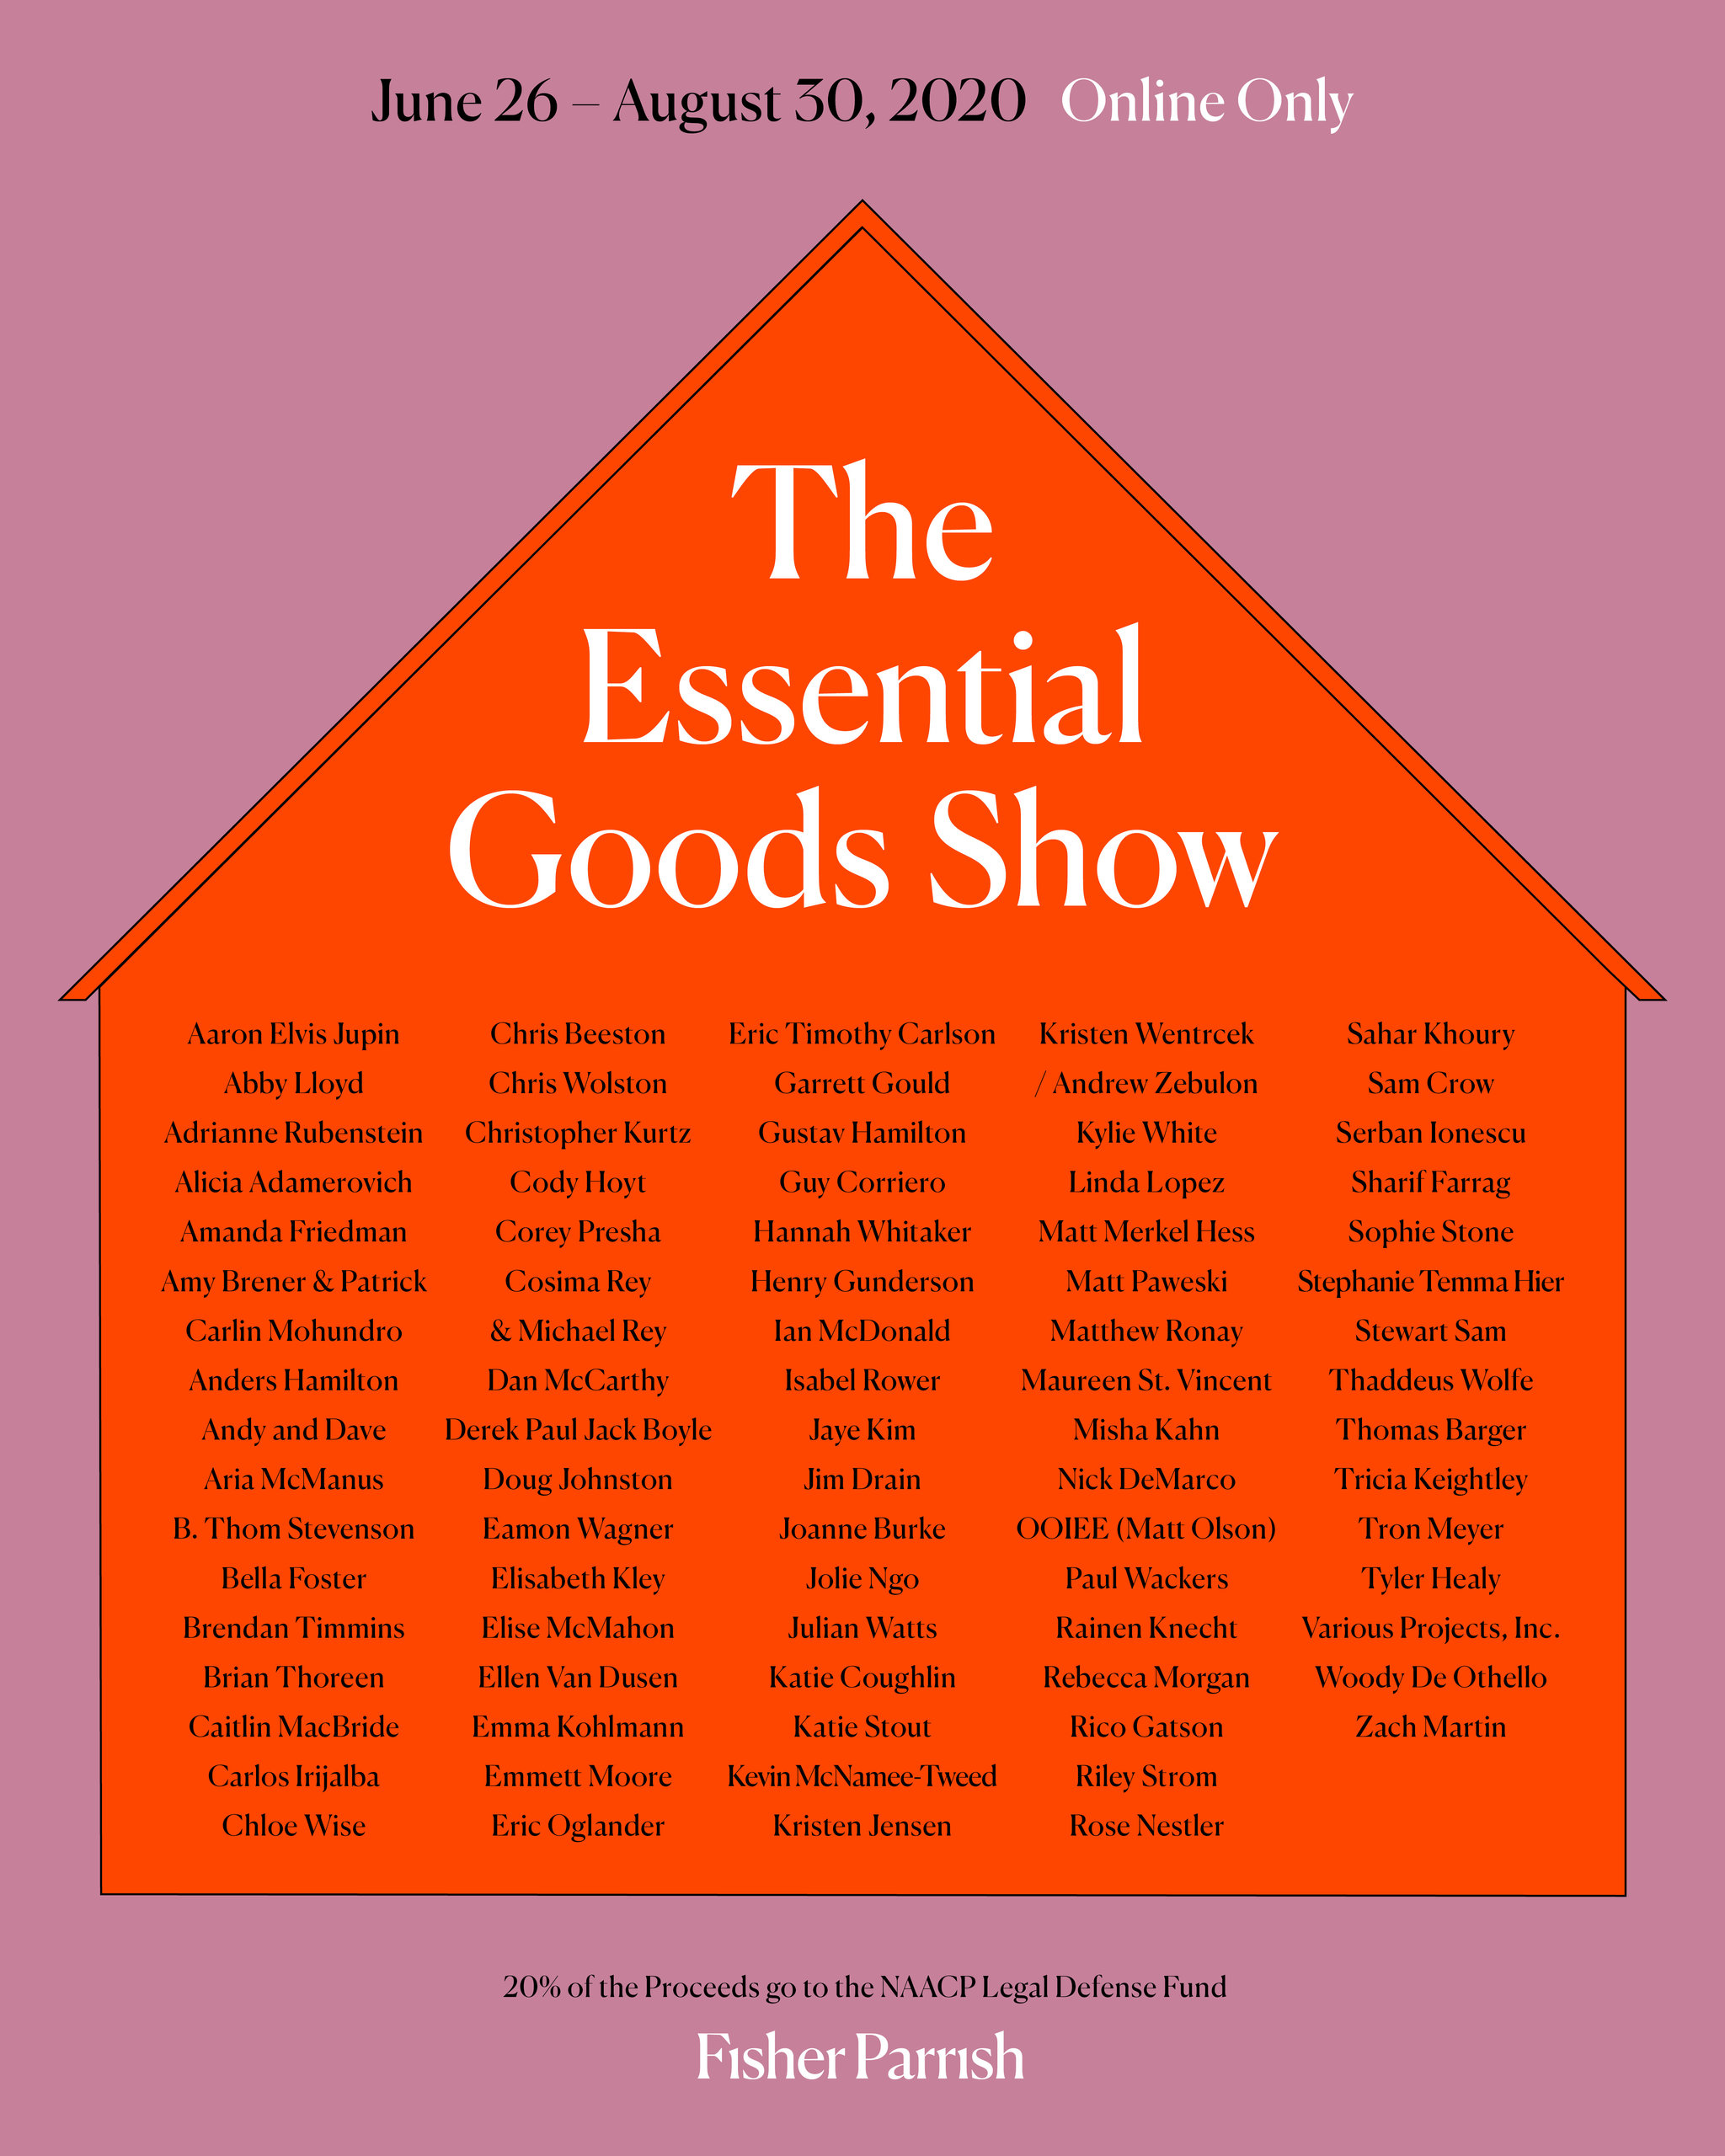 The Essential Goods Show